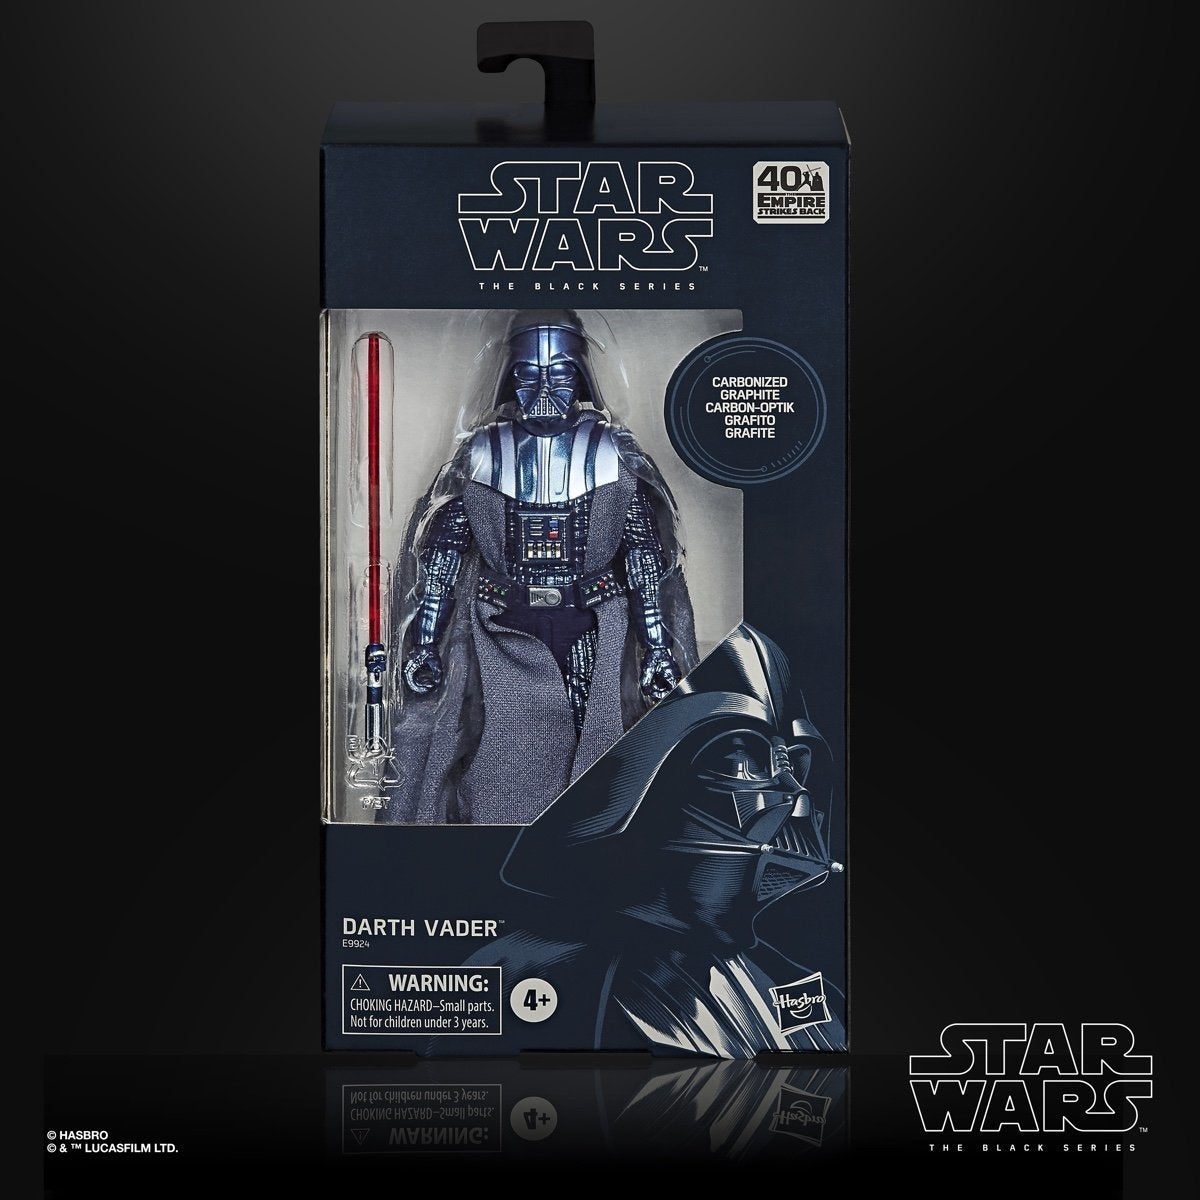 Star Wars Day Starts Early With New The Black Series And Vintage Collection Releases